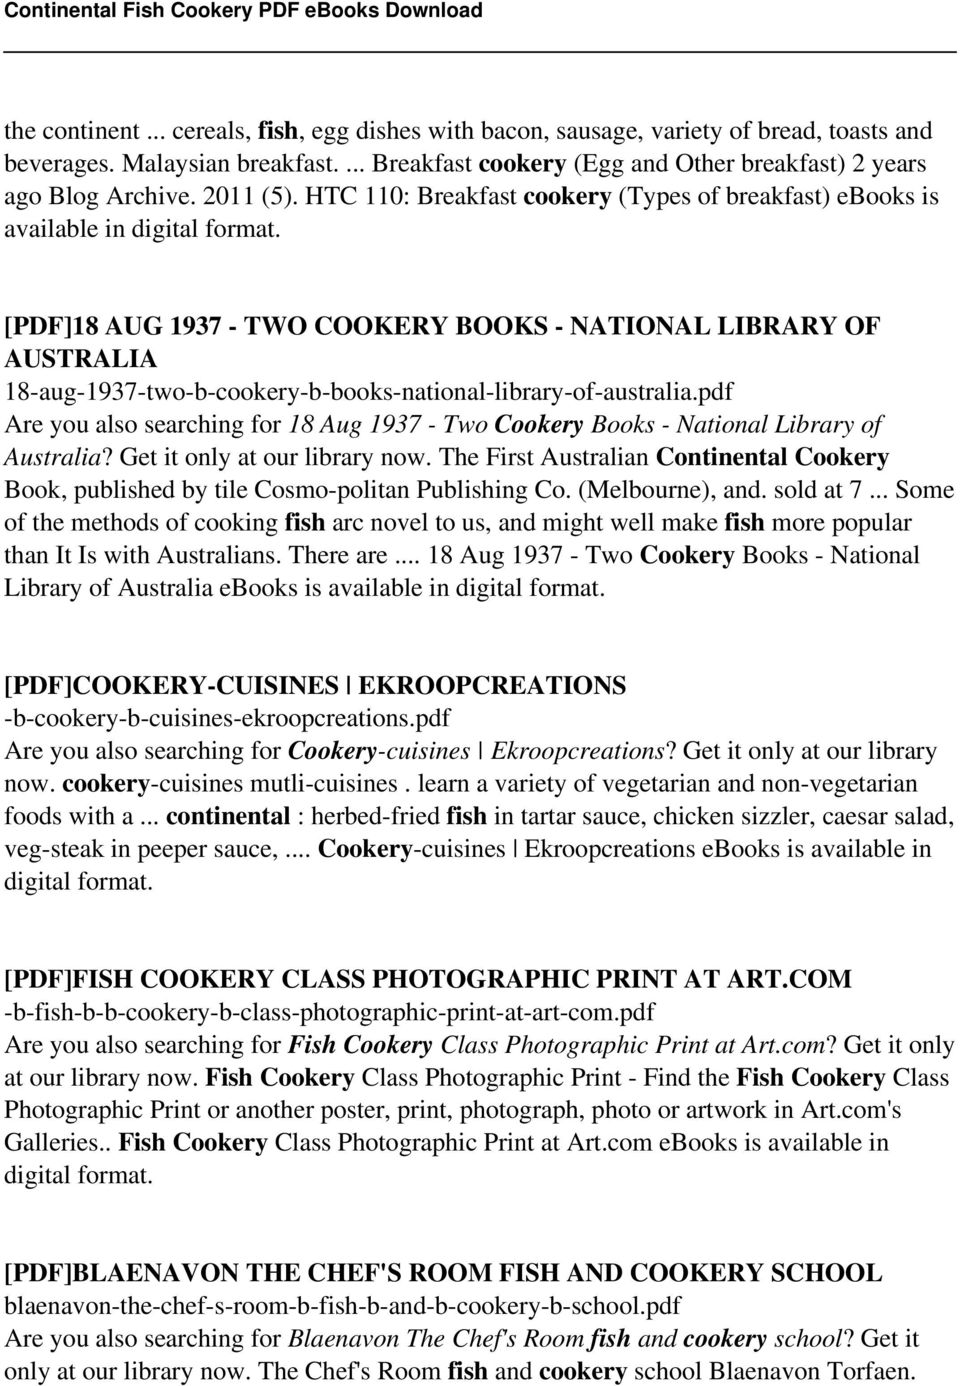 Continental fish cookery pdf pdf pdf18 aug 1937 two cookery books national library of australia 18 fandeluxe Gallery